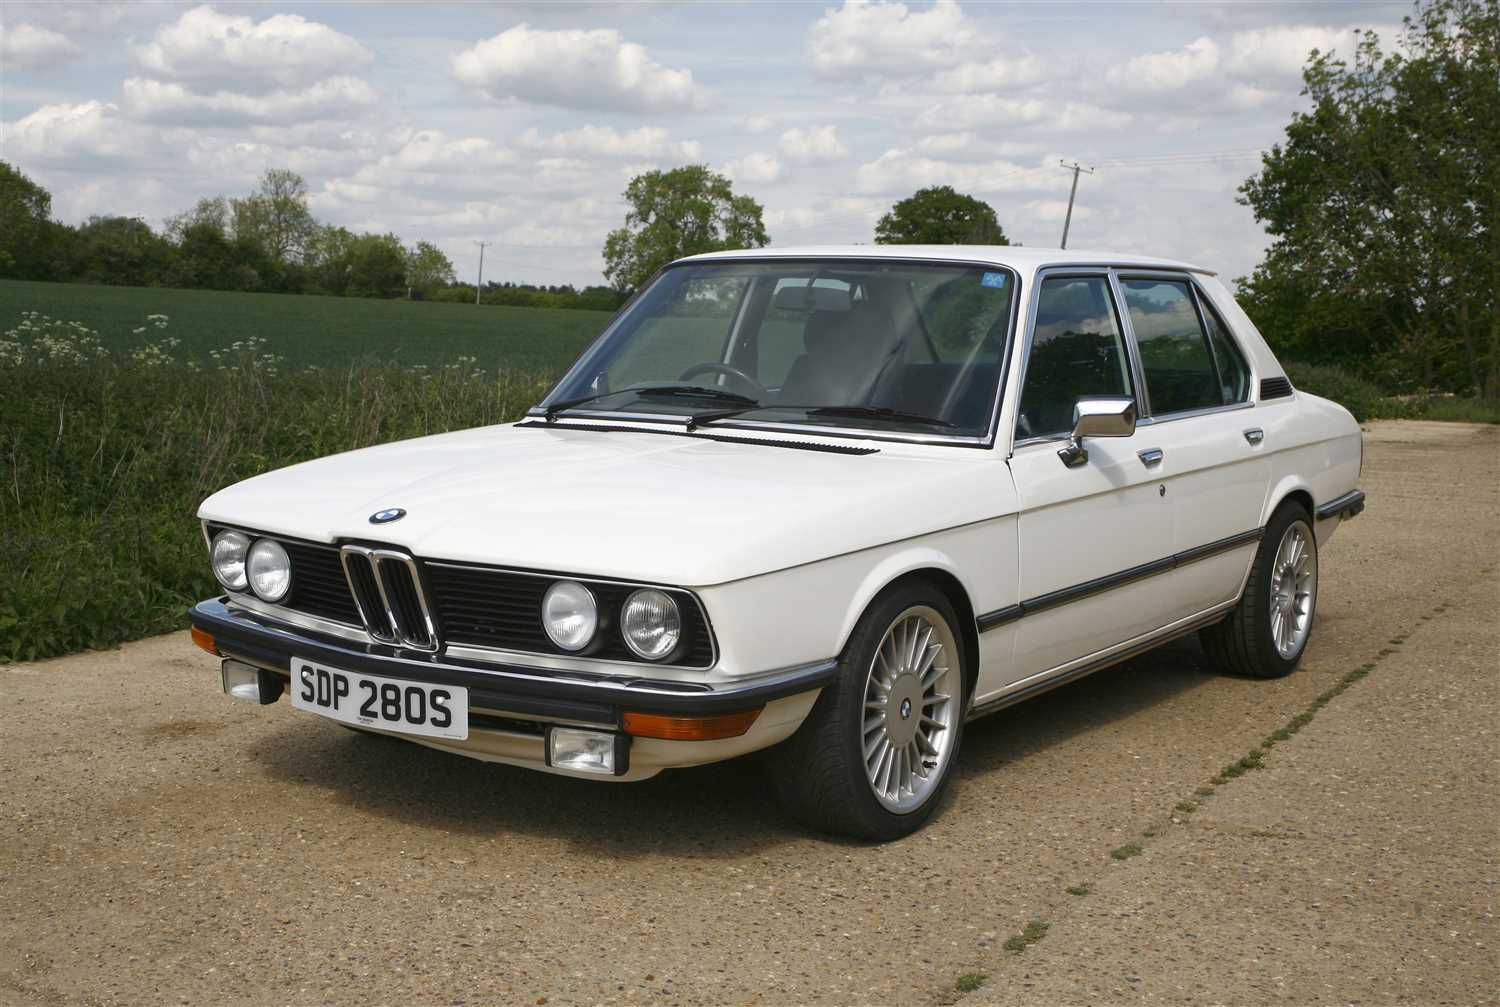 Lot 2-1977 BMW 528a four-door saloon